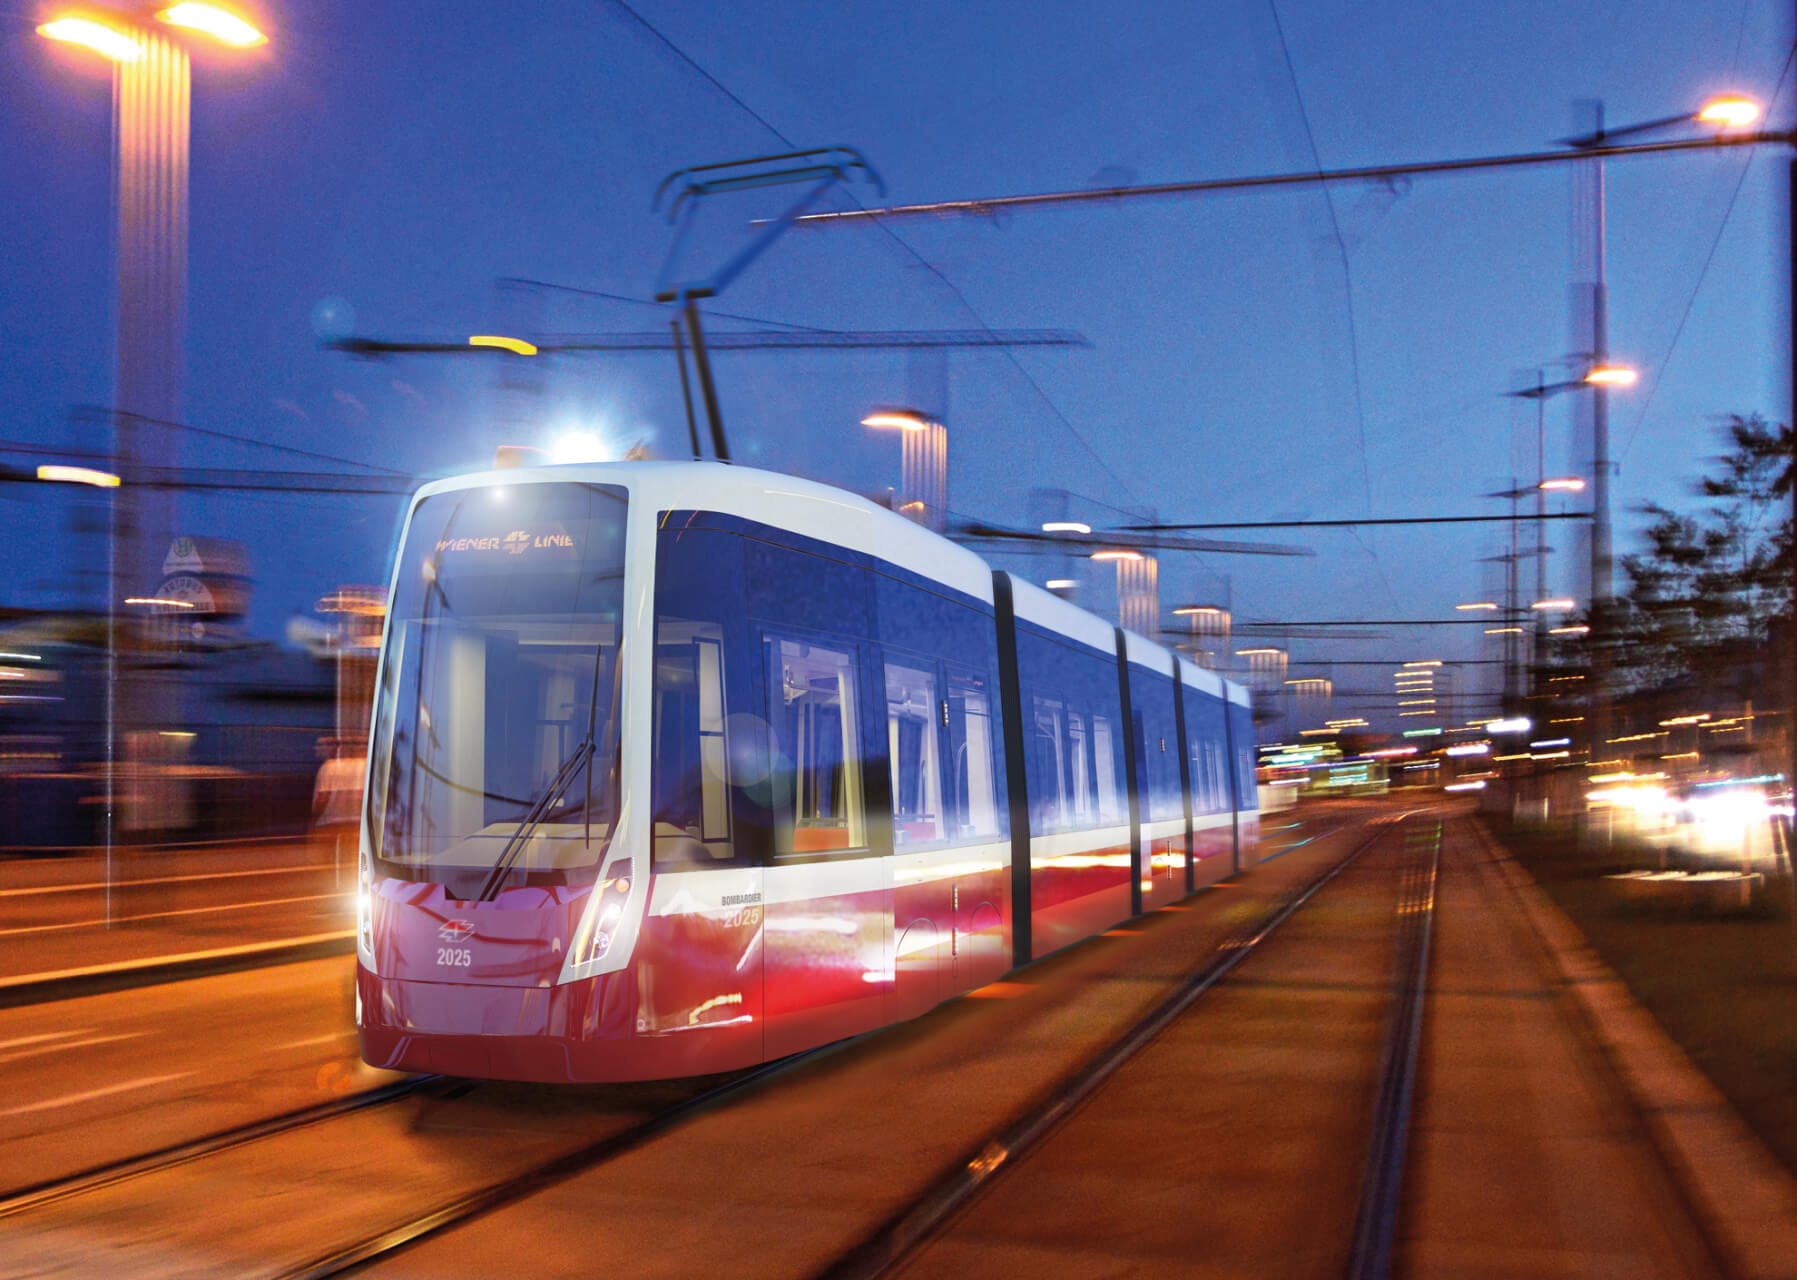 rendering of the new Tram for Vienna